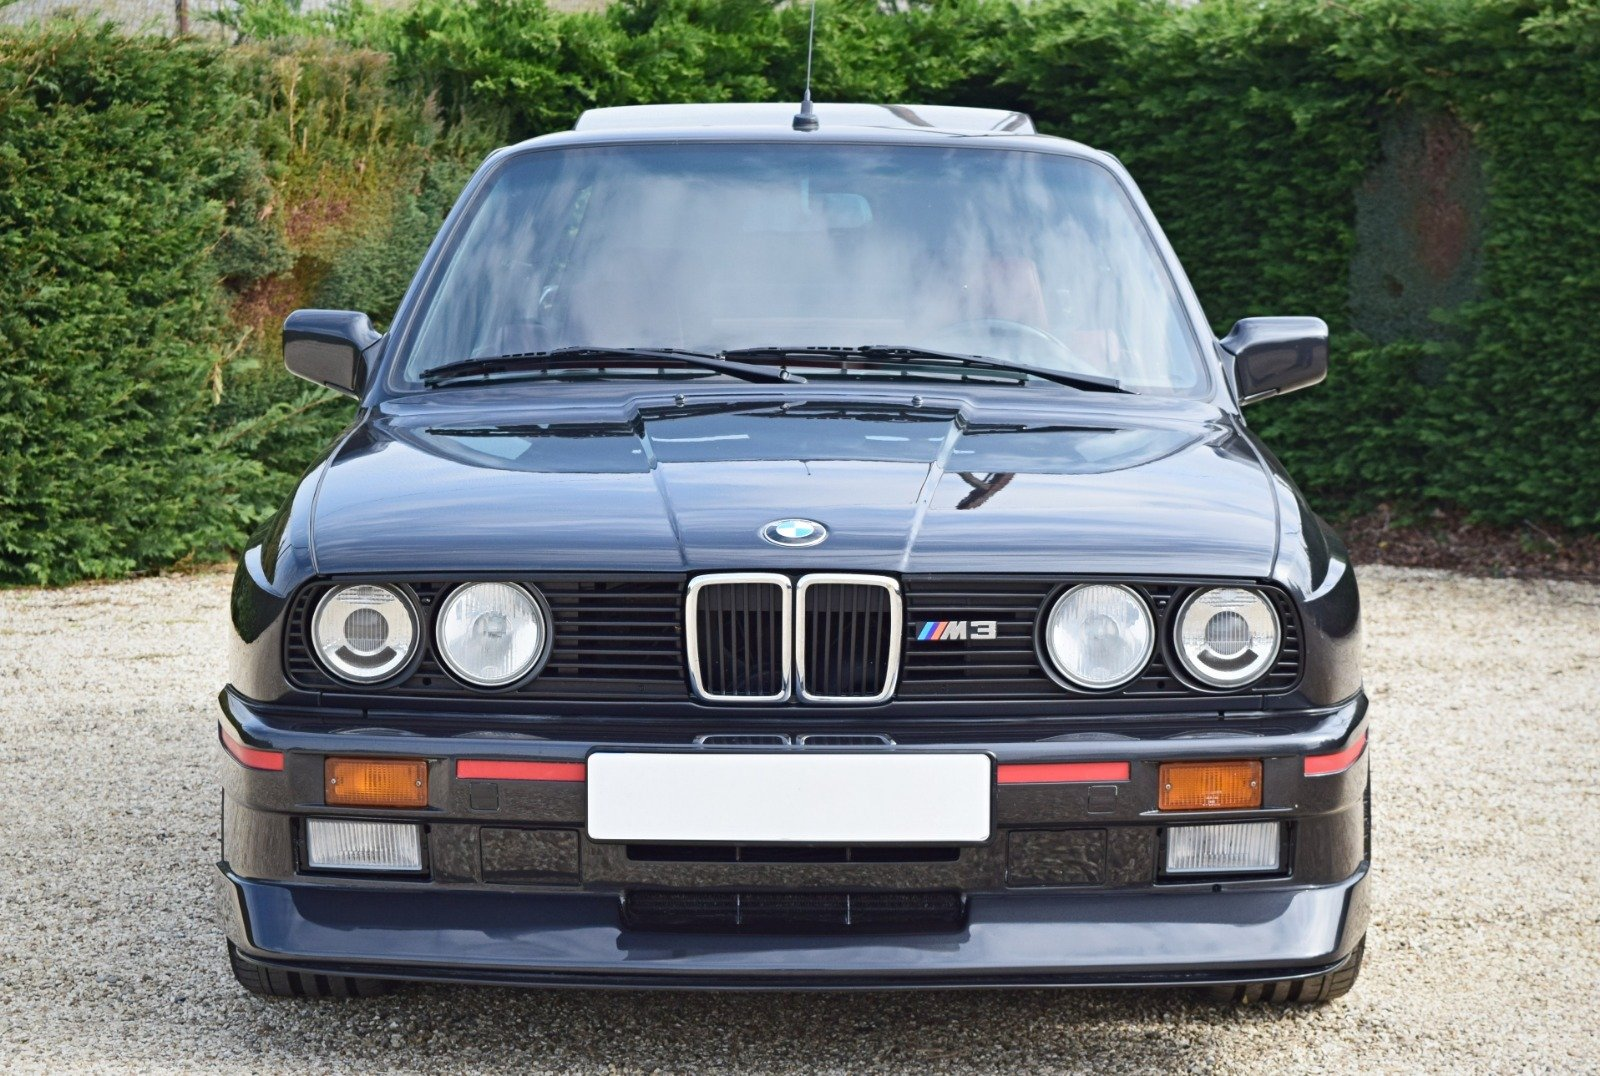 BMW M3 E30 2.3 PETROL MANUAL 1992/K BLACK For Sale (picture 3 of 6)